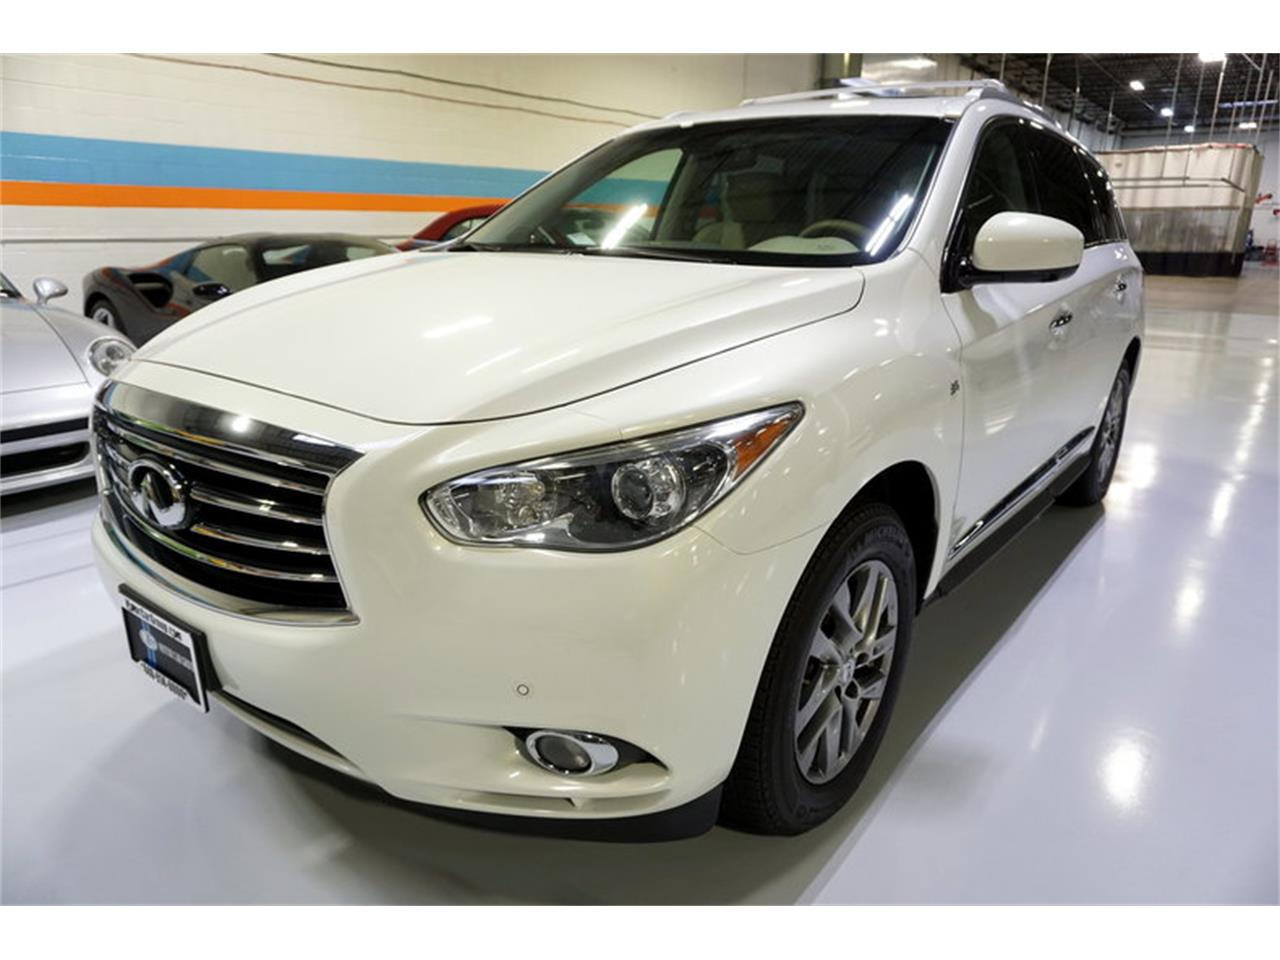 Large Picture of 2014 Infiniti QX60 - $28,990.00 Offered by R&H Motor Car Group - MD5Q